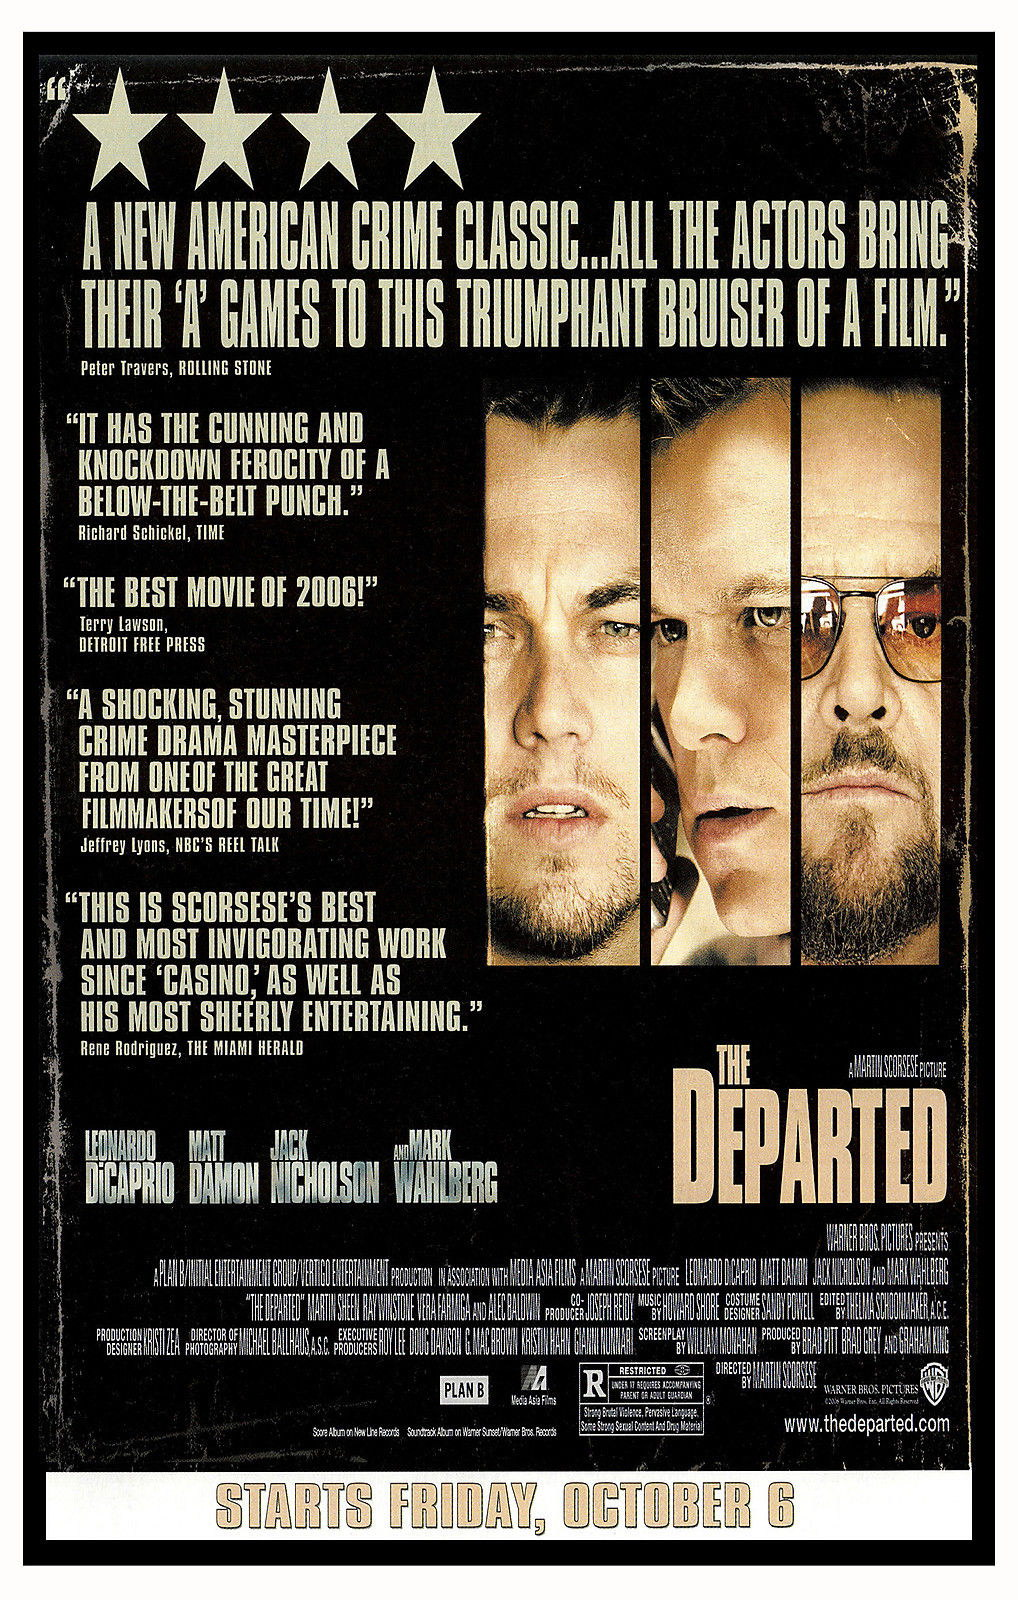 73385-THE-DEPARTED-Martin-Scorsese-Leonardo-DiCaprio-Wall-Print-Poster-Affiche